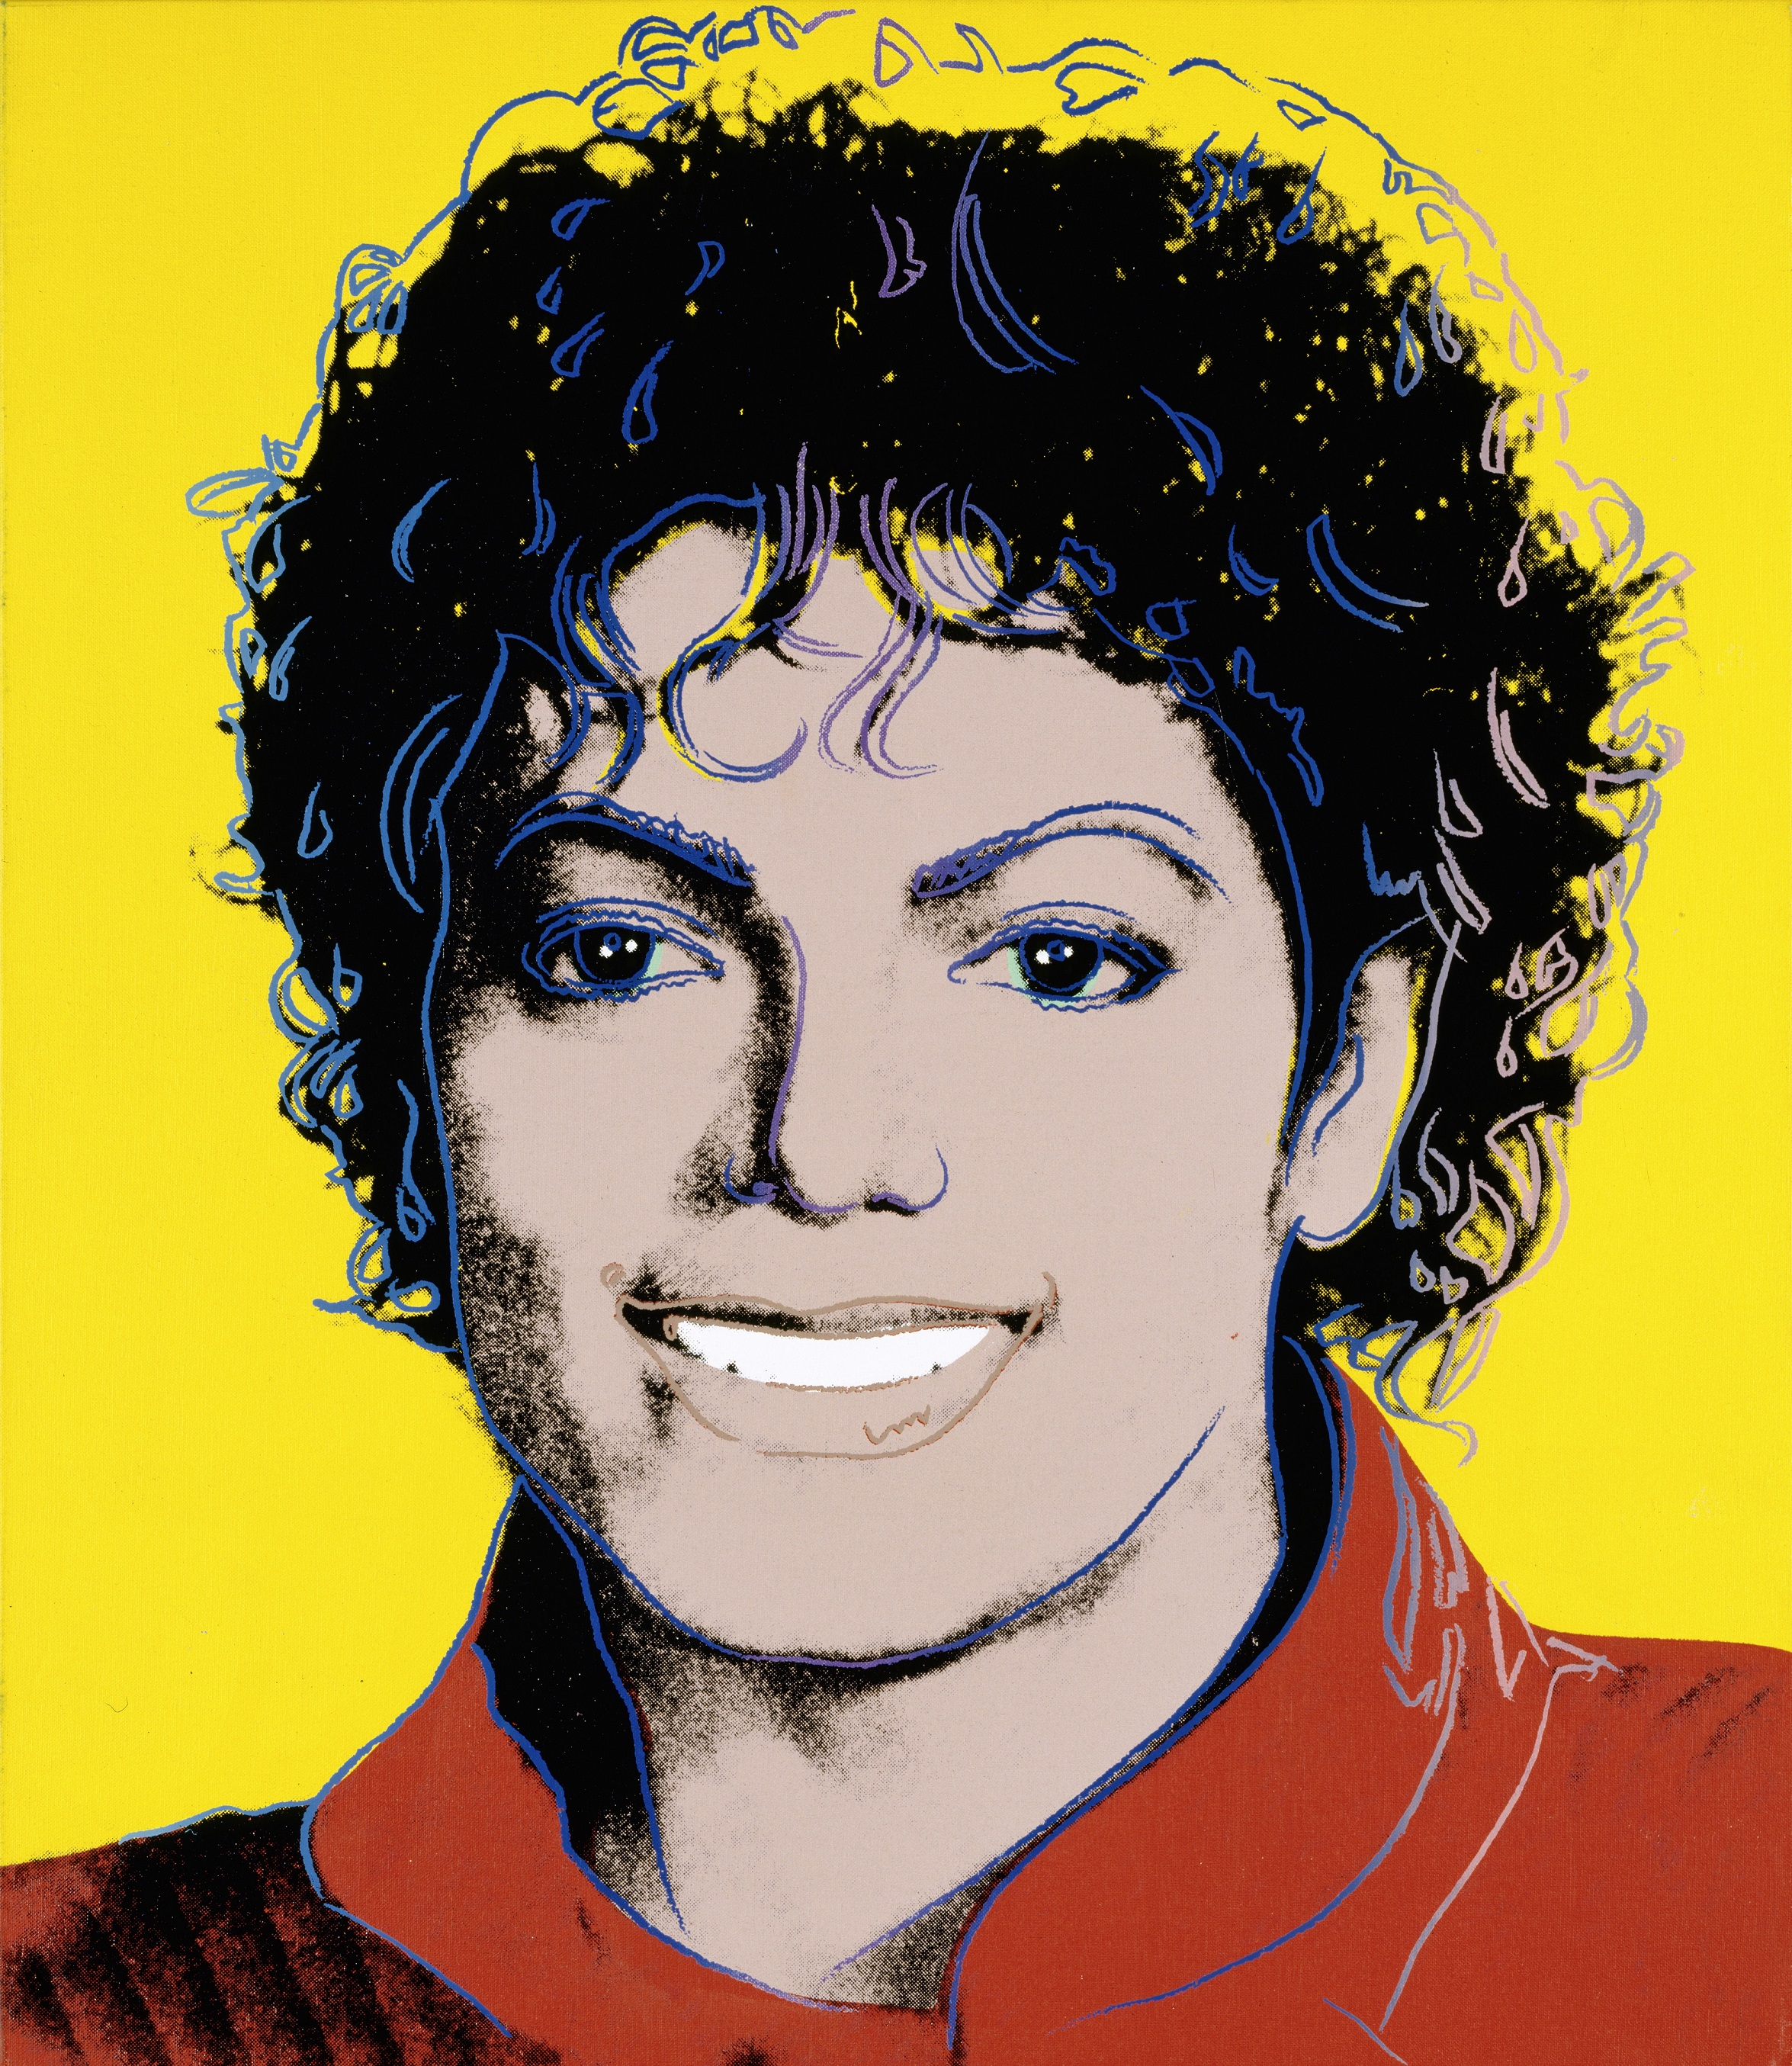 Michael Jackson (1984) by Andy Warhol (National Portrait Gallery)